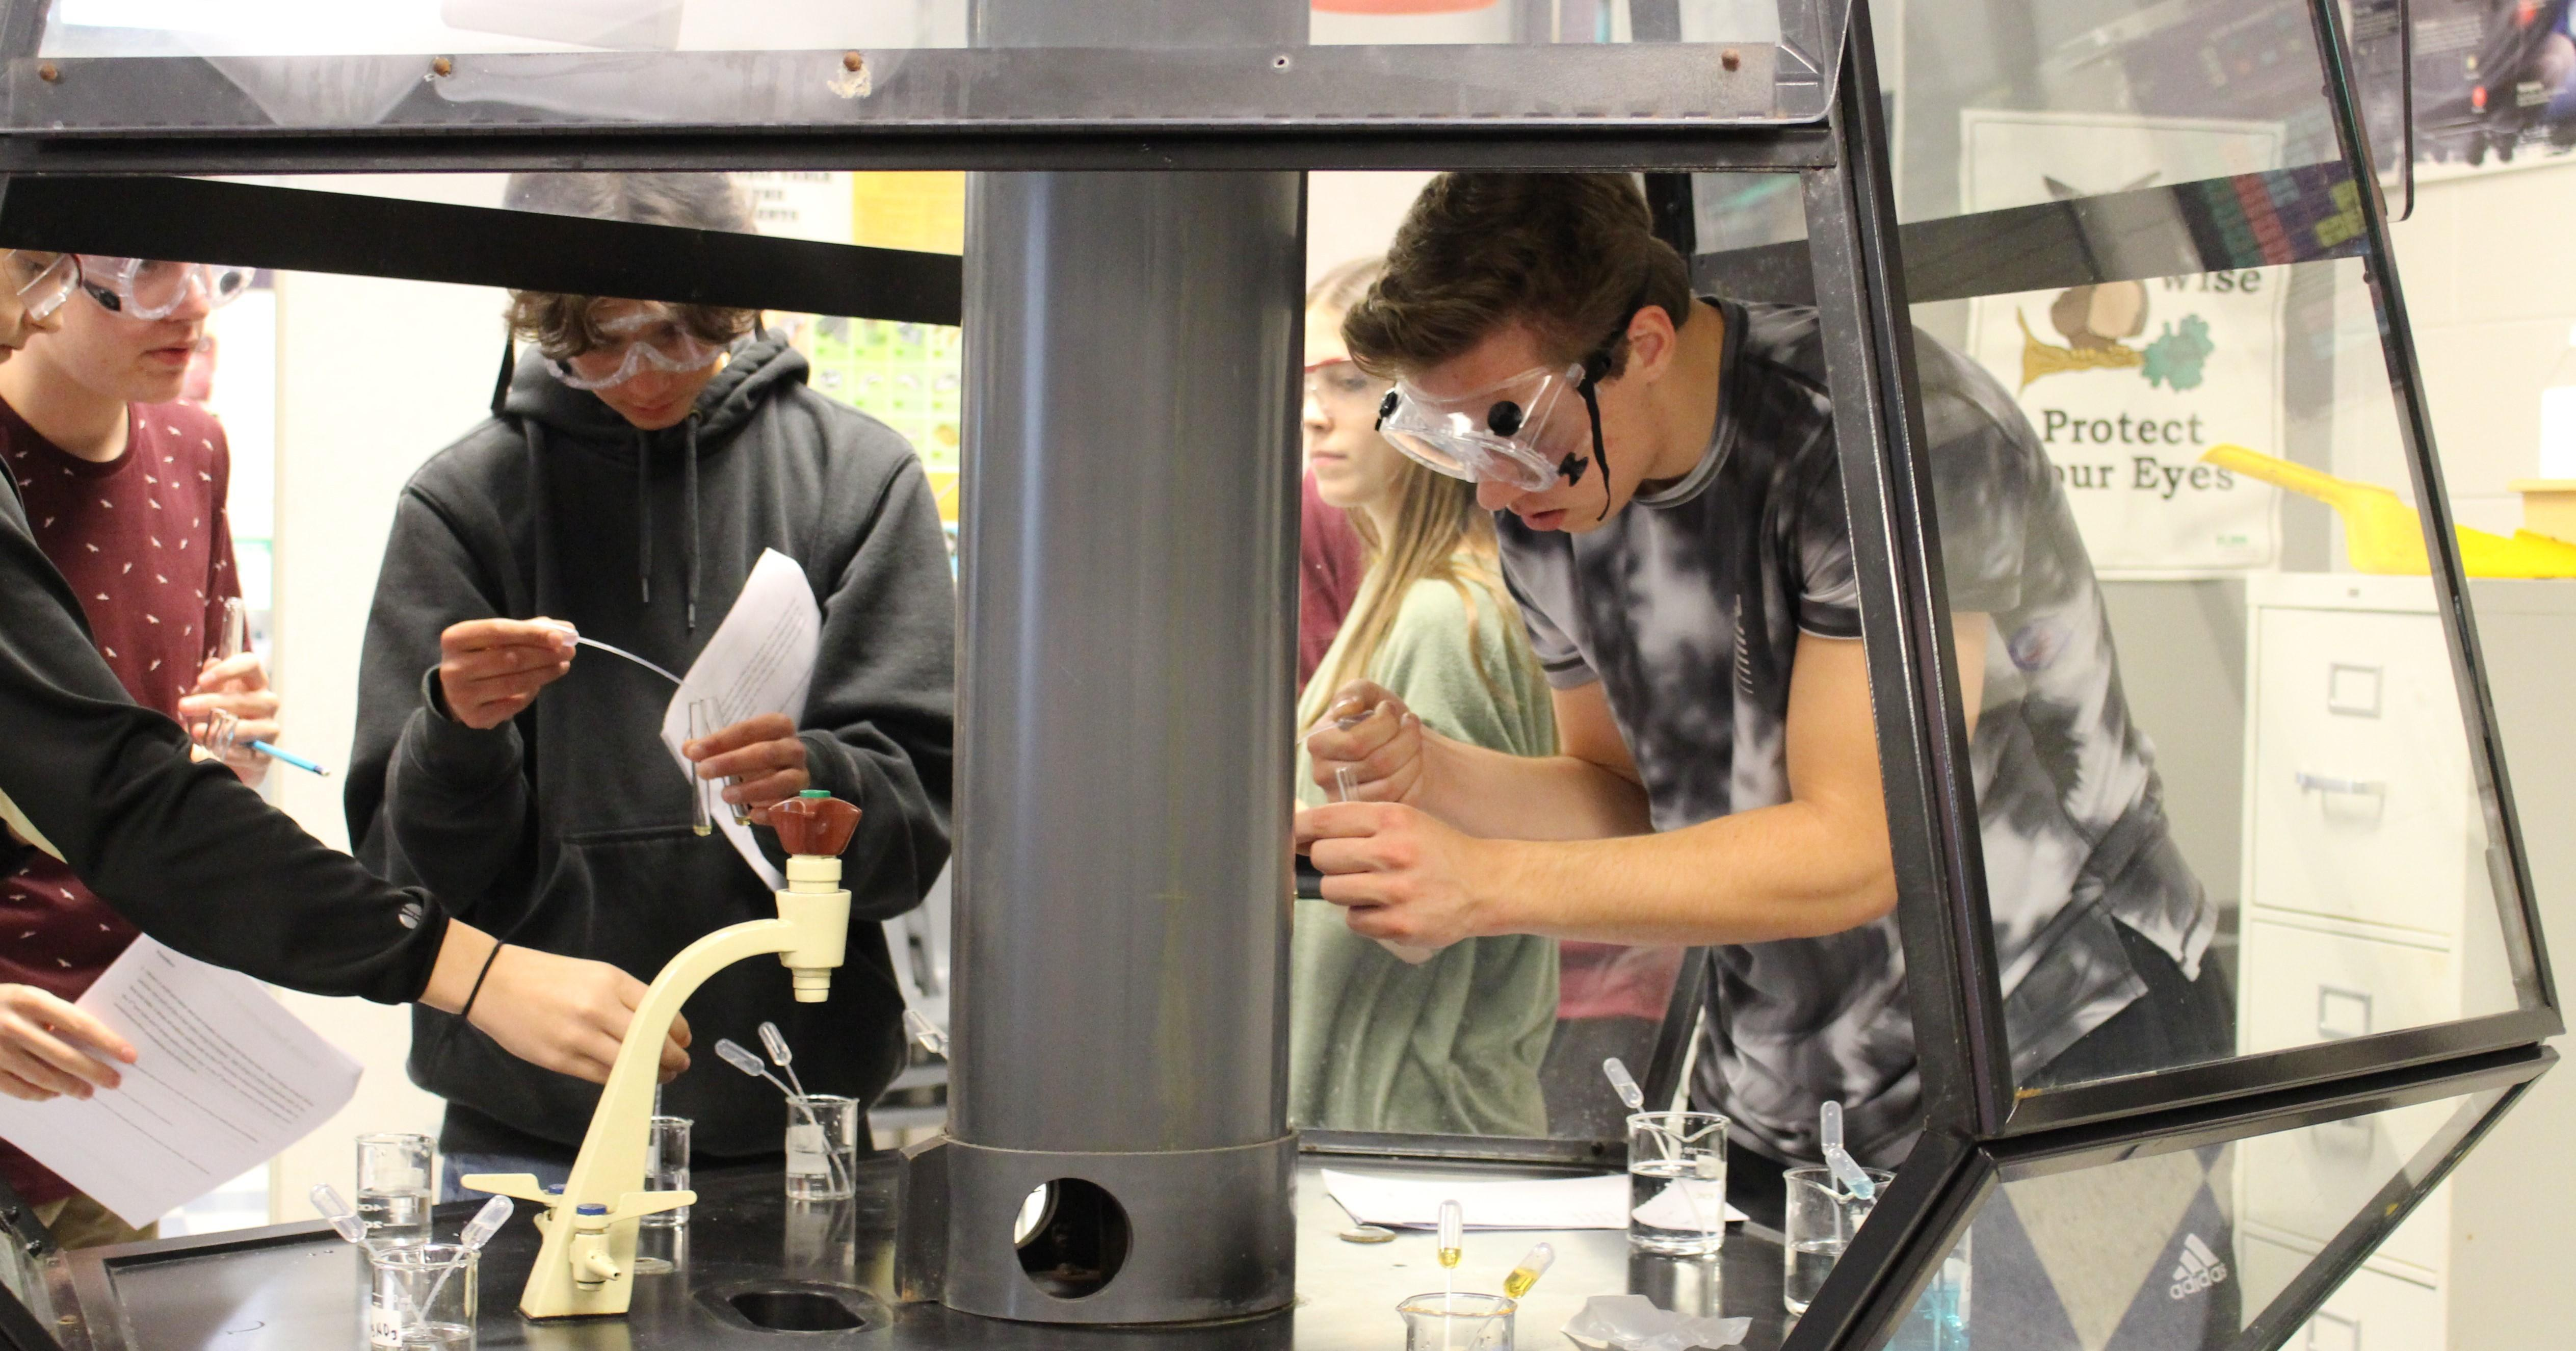 students wear goggles in chemistry while combining solutions in glass protective area